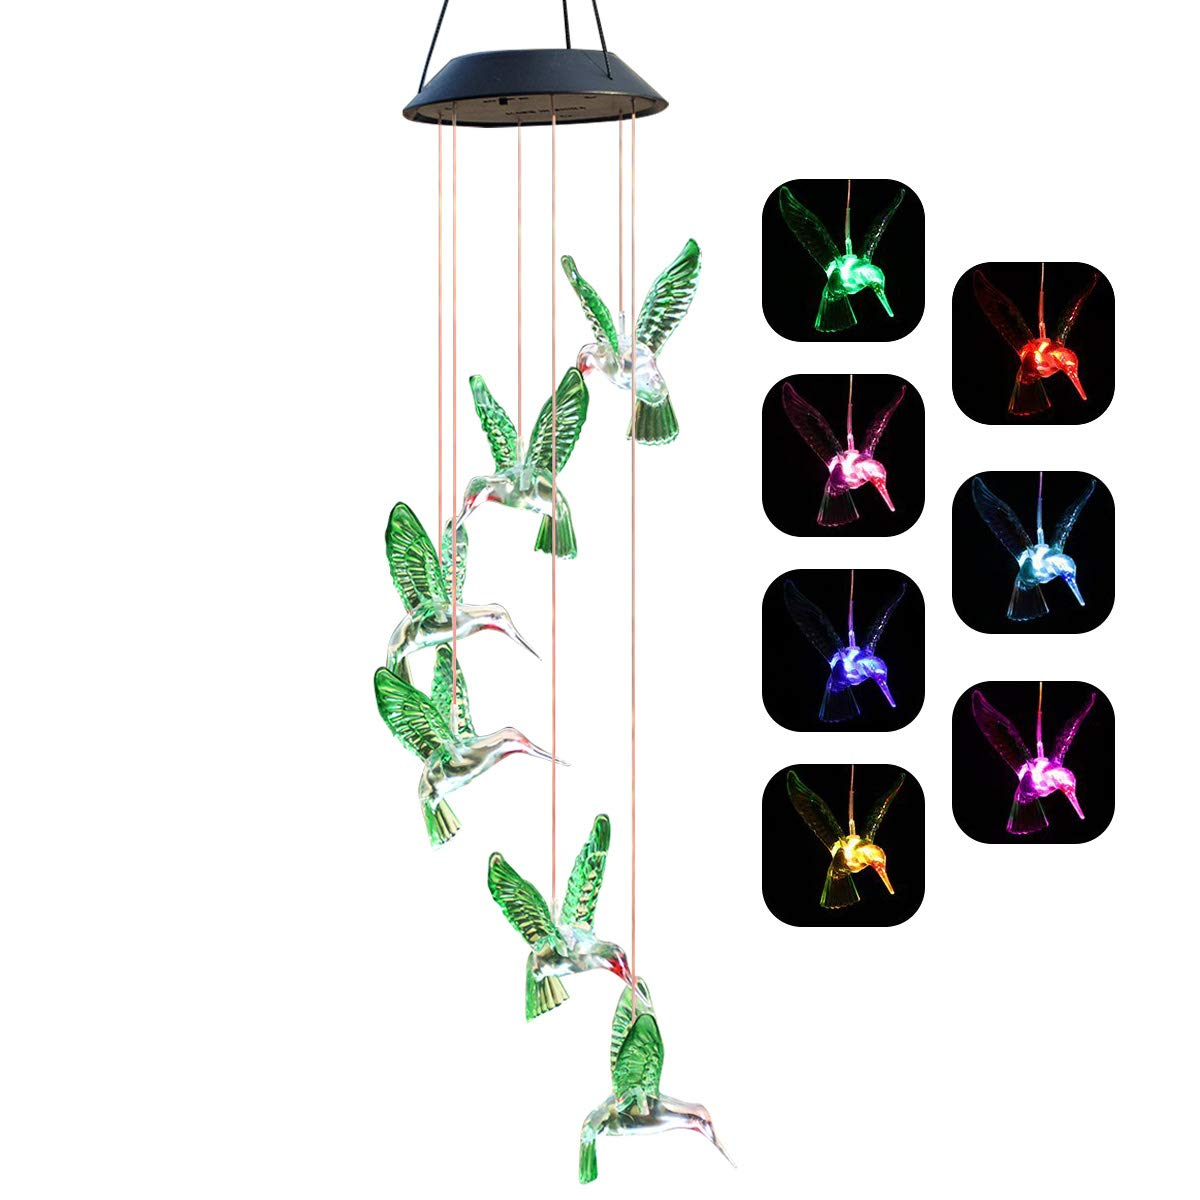 Chasgo Solar Hummingbird Wind Chime Color Changing Solar Mobile Wind Chime Outdoor Mobile Hanging Patio Light by Chasgo